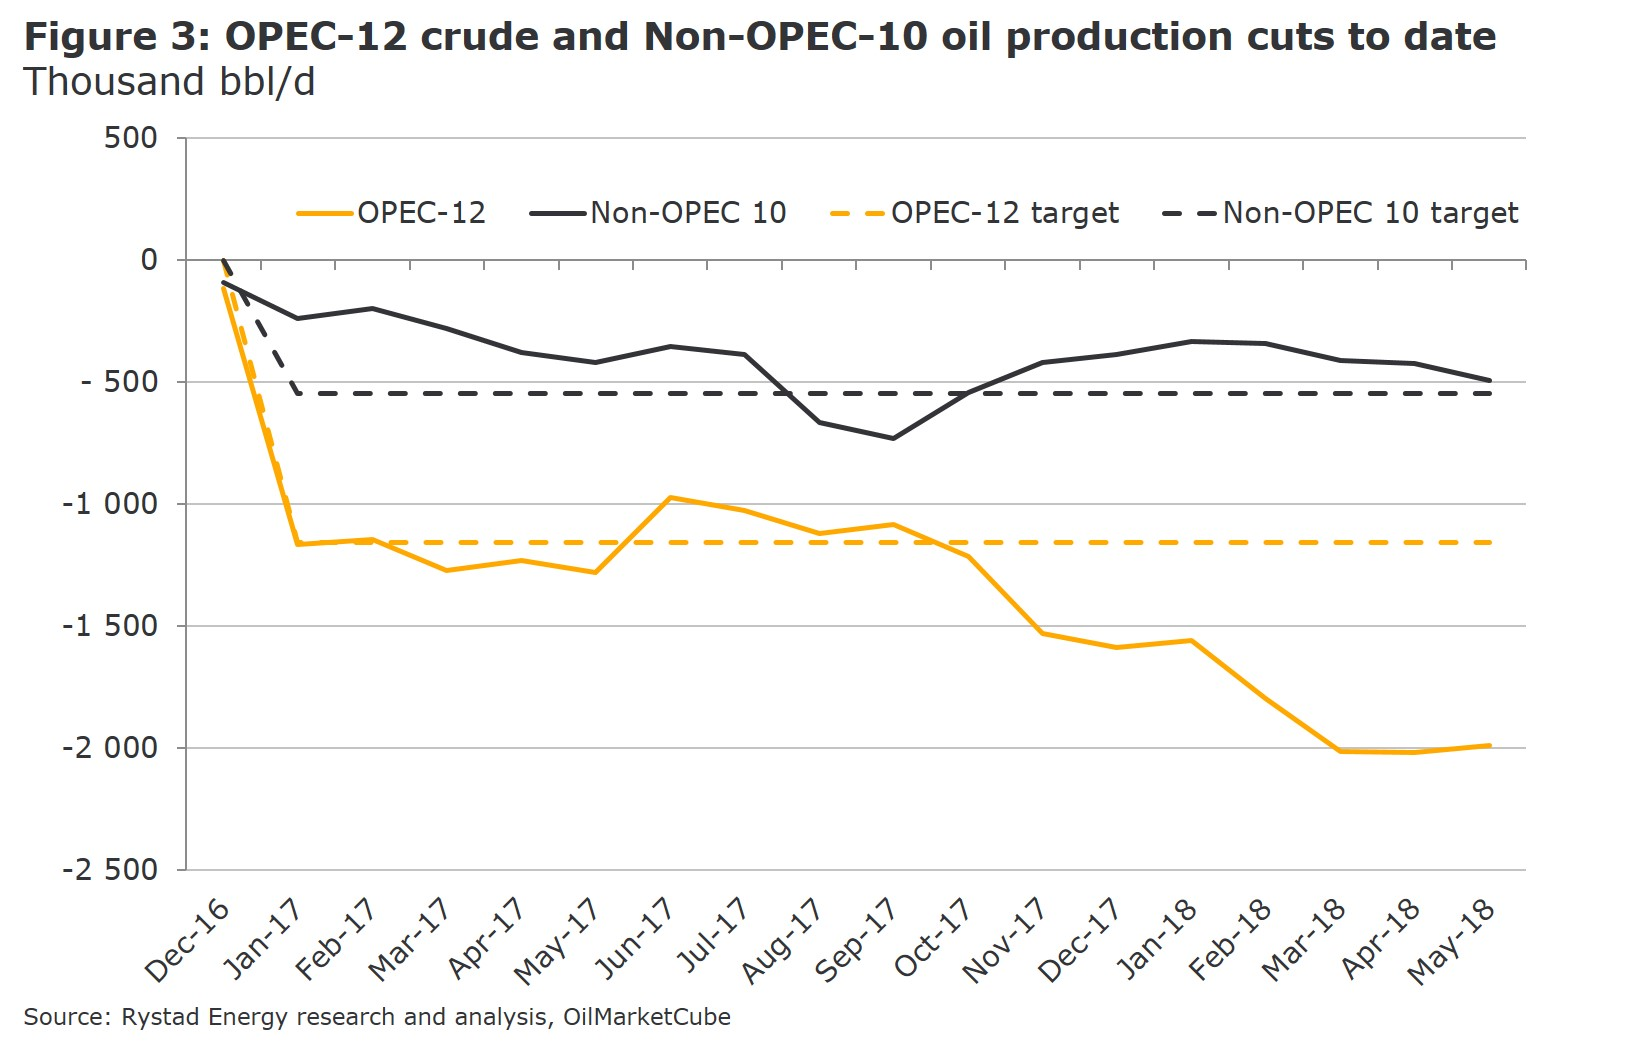 Figure 3: A graph showing OPEC-12 crude and Non-OPEC-10 oil production cuts to date in Thousand bbl/d from Dec 2016 to May 2018. Source: Rystad Energy OilMarketCube